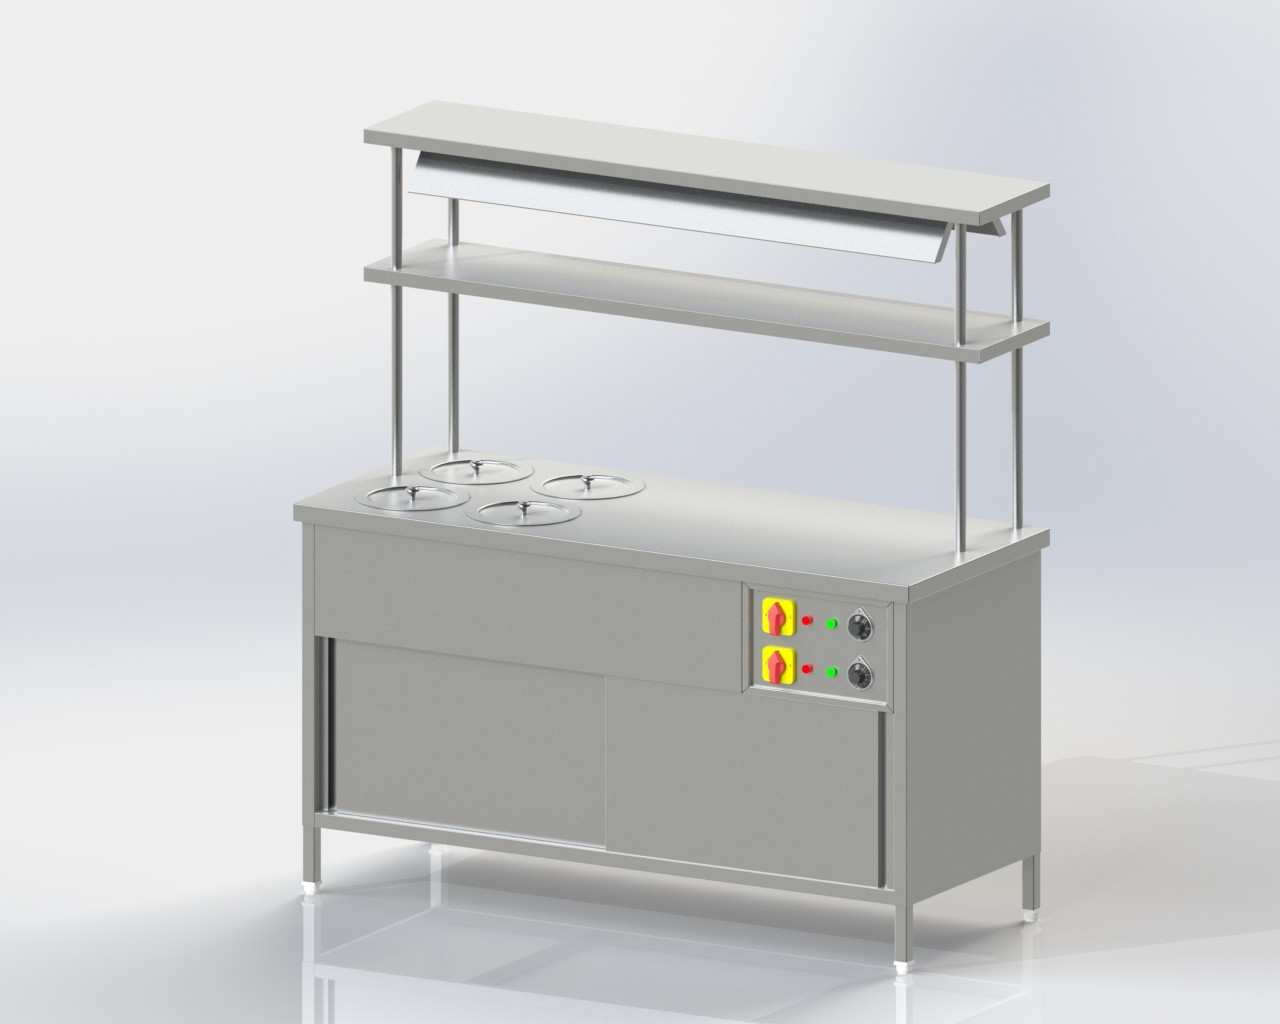 Pick up Counter + hot case + Bain Marie